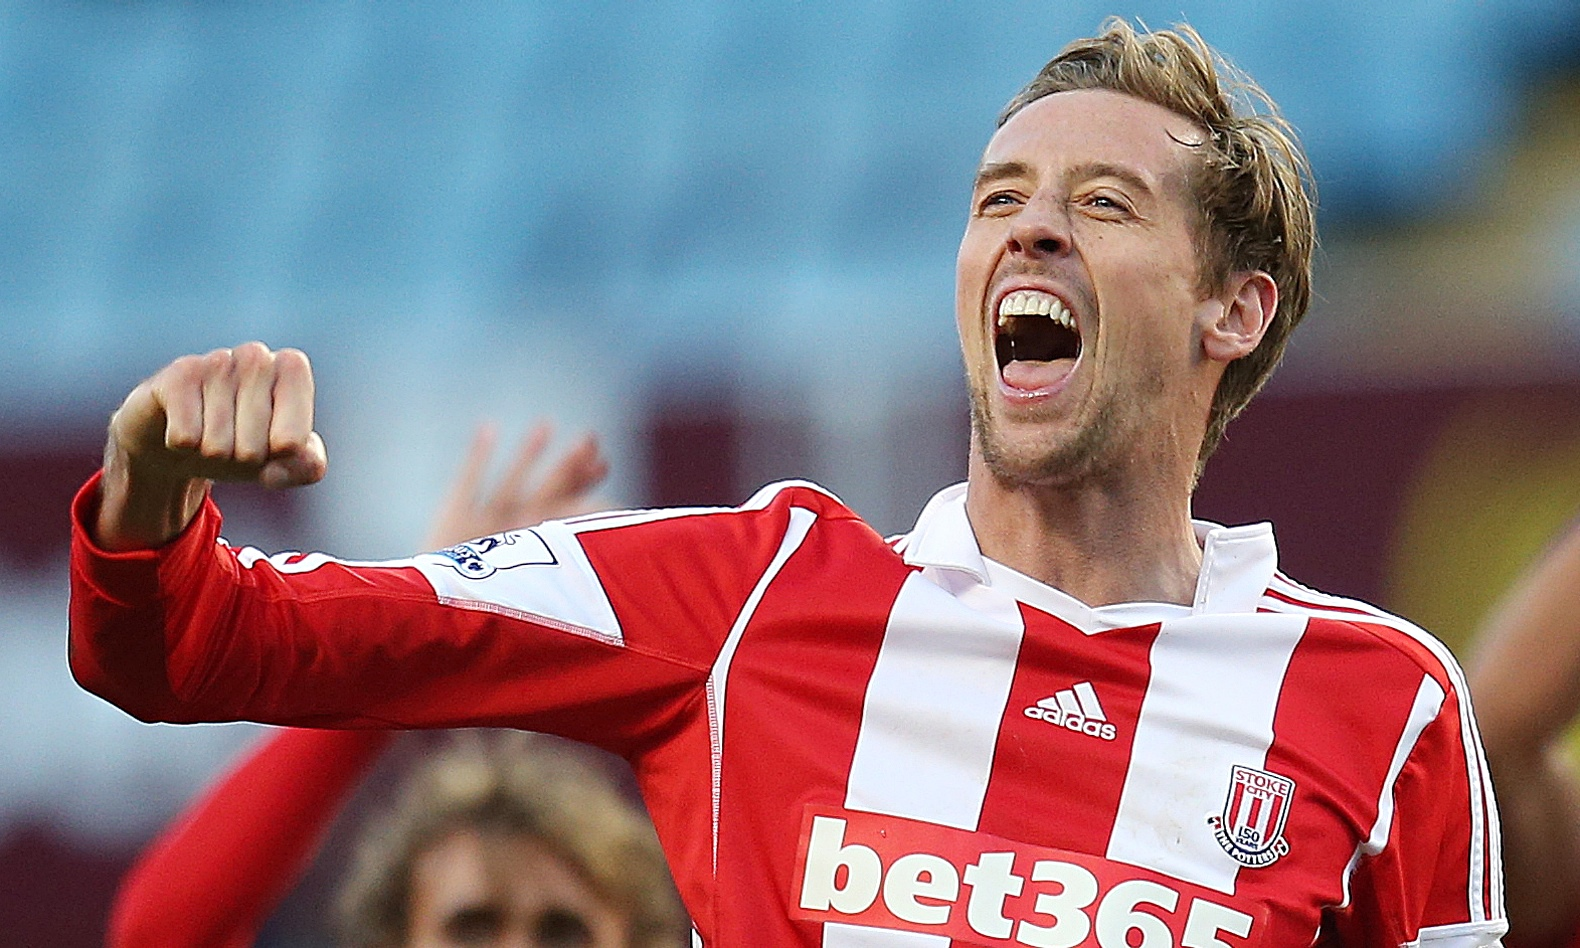 Stoke's Peter Crouch has received support that he is worthy of a place in England's World Cup squad